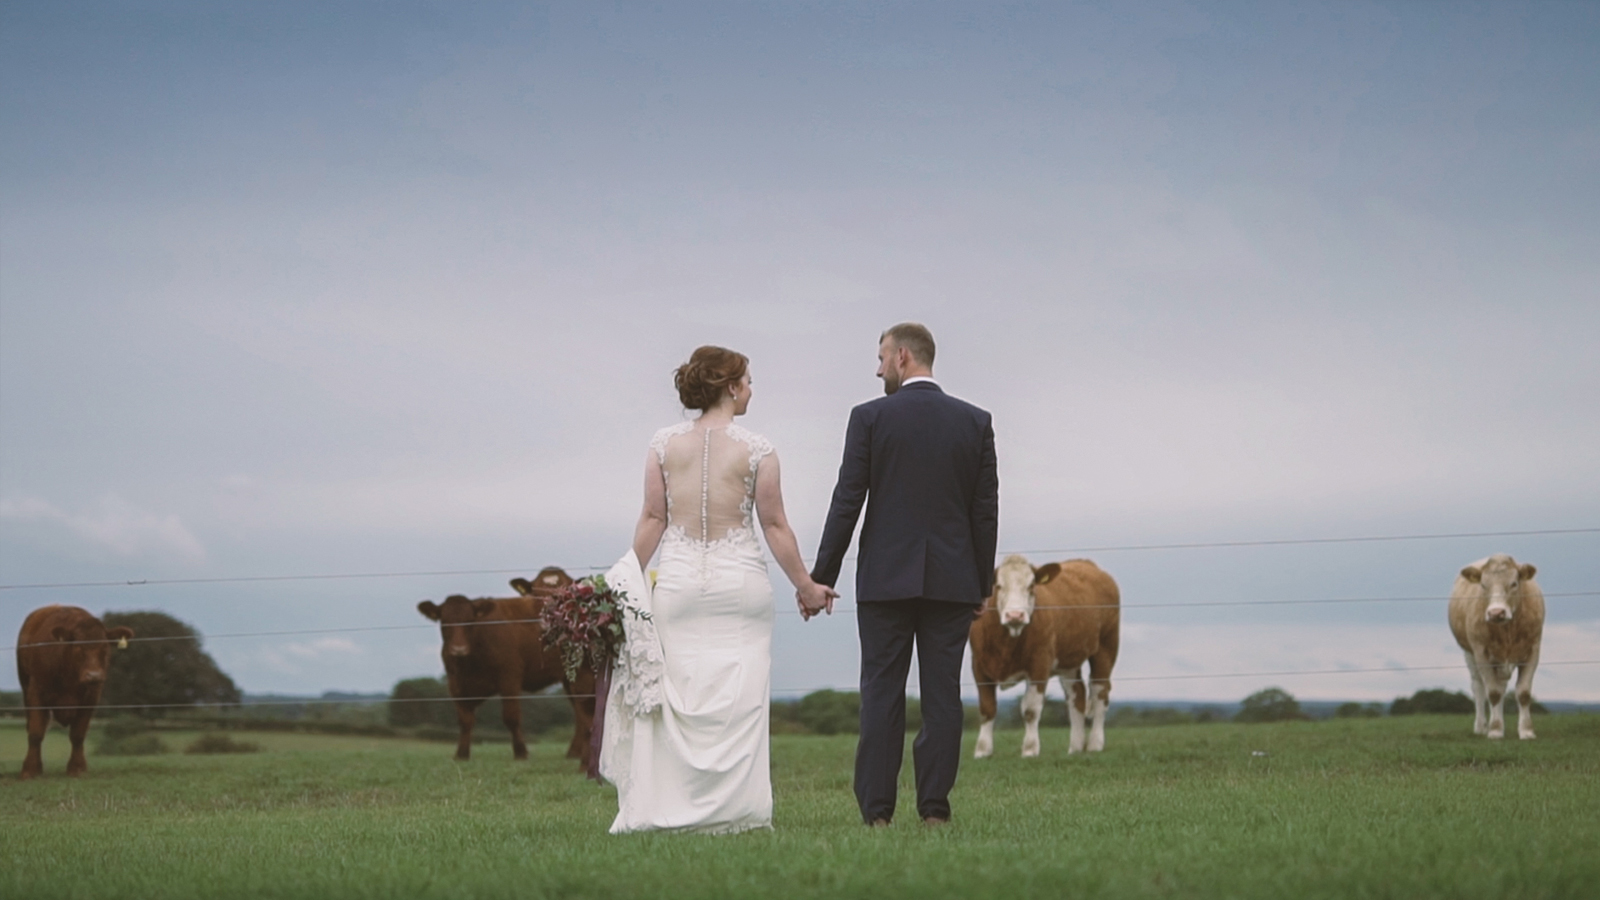 Wedding Videography Harrogate